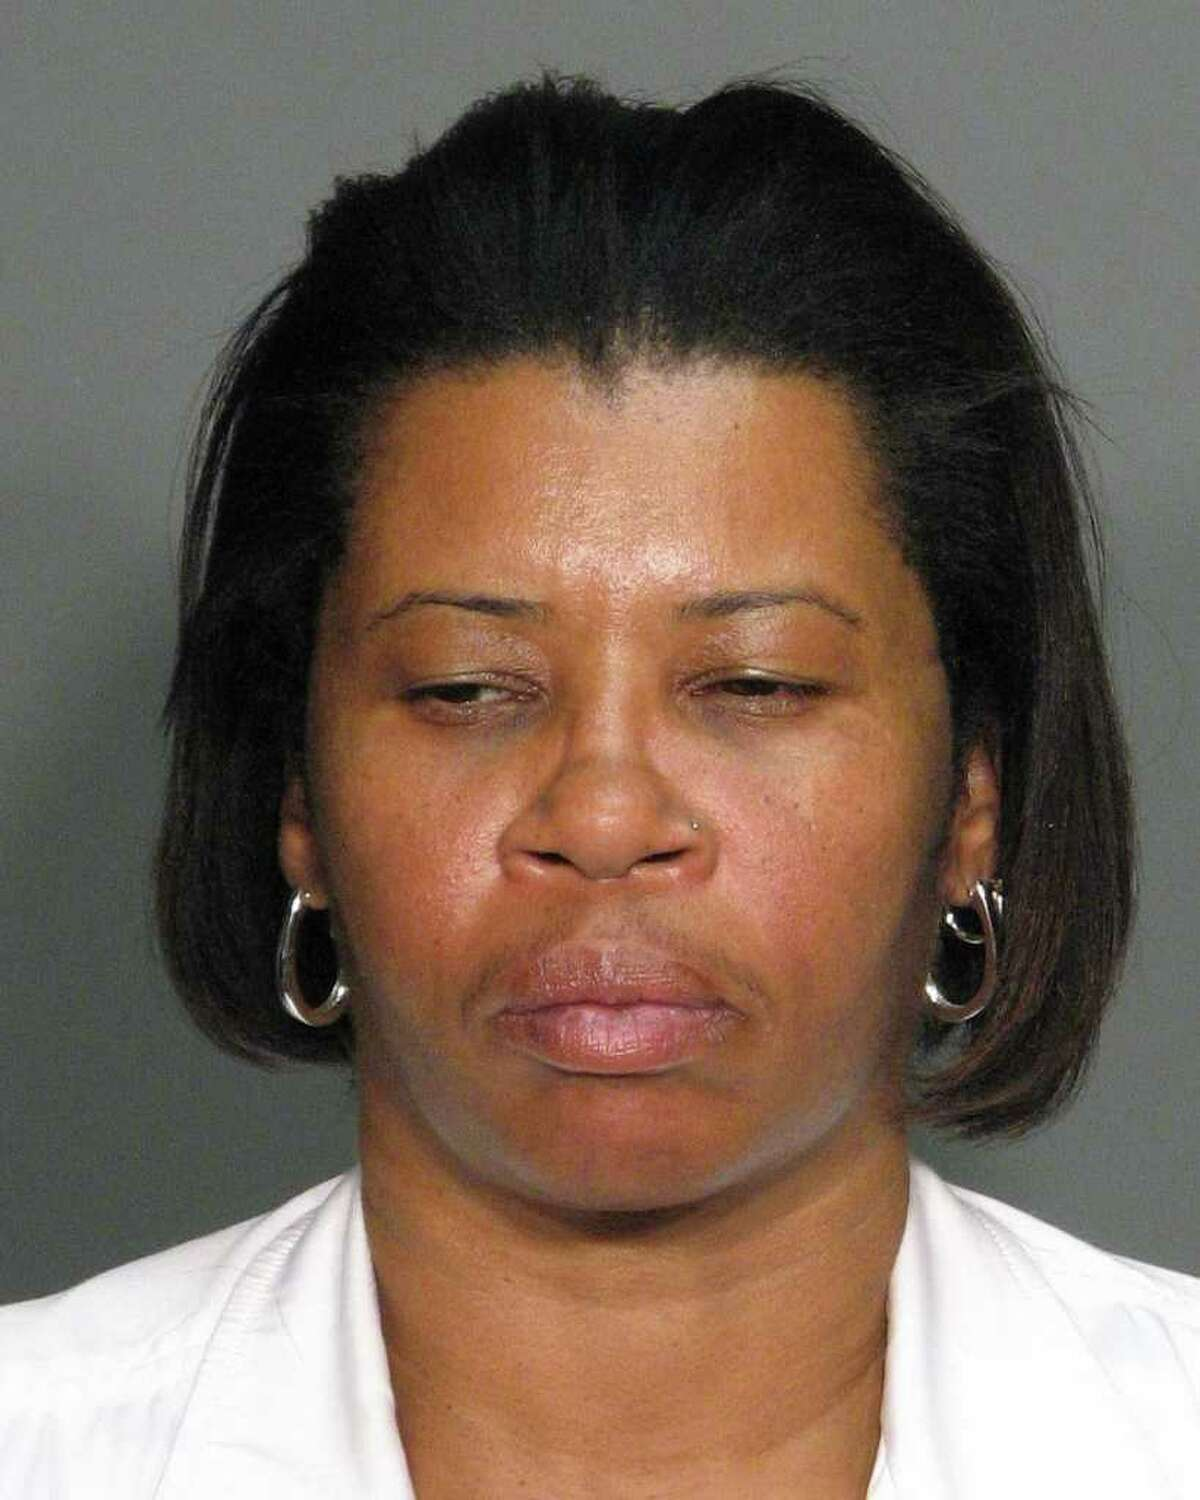 2010 file photo of Ann Pettway,. A New York federal judge on Thursday set a trial date for Ann Pettway, 11 months after the Bridgeport native was charged with kidnapping an infant 23 years earlier. U.S. Judge Kevin Castel set April 2 as the first day of the trial. Last spring, Pettway pleaded not guilty to kidnapping 3-week-old Carlina White from Harlem Hospital in August 1987, and raising her in Bridgeport as Nejdra Nance.(AP Photo/Wake County Bureau of Identification, File)